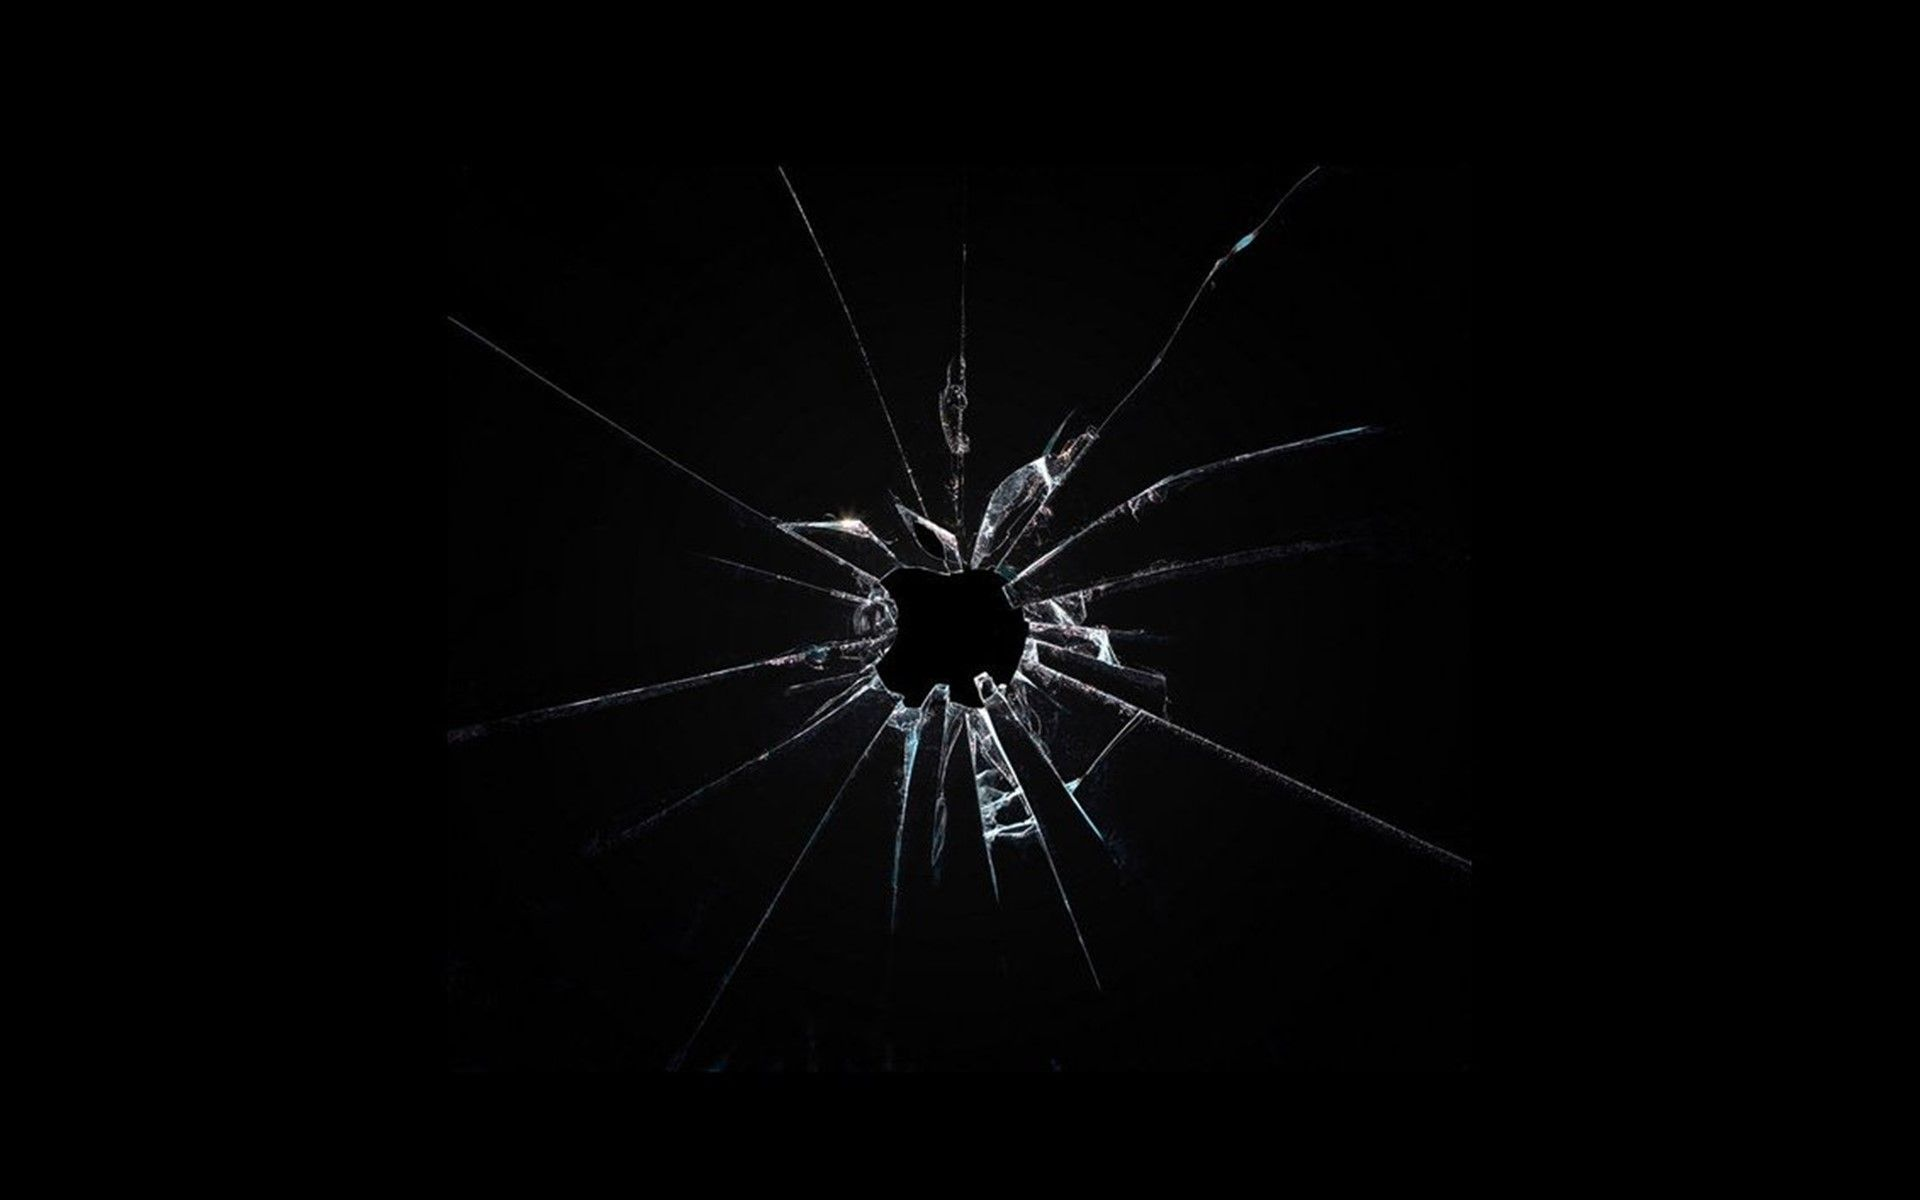 Broken Glass Wallpaper For Android Dark wallpaper iphone